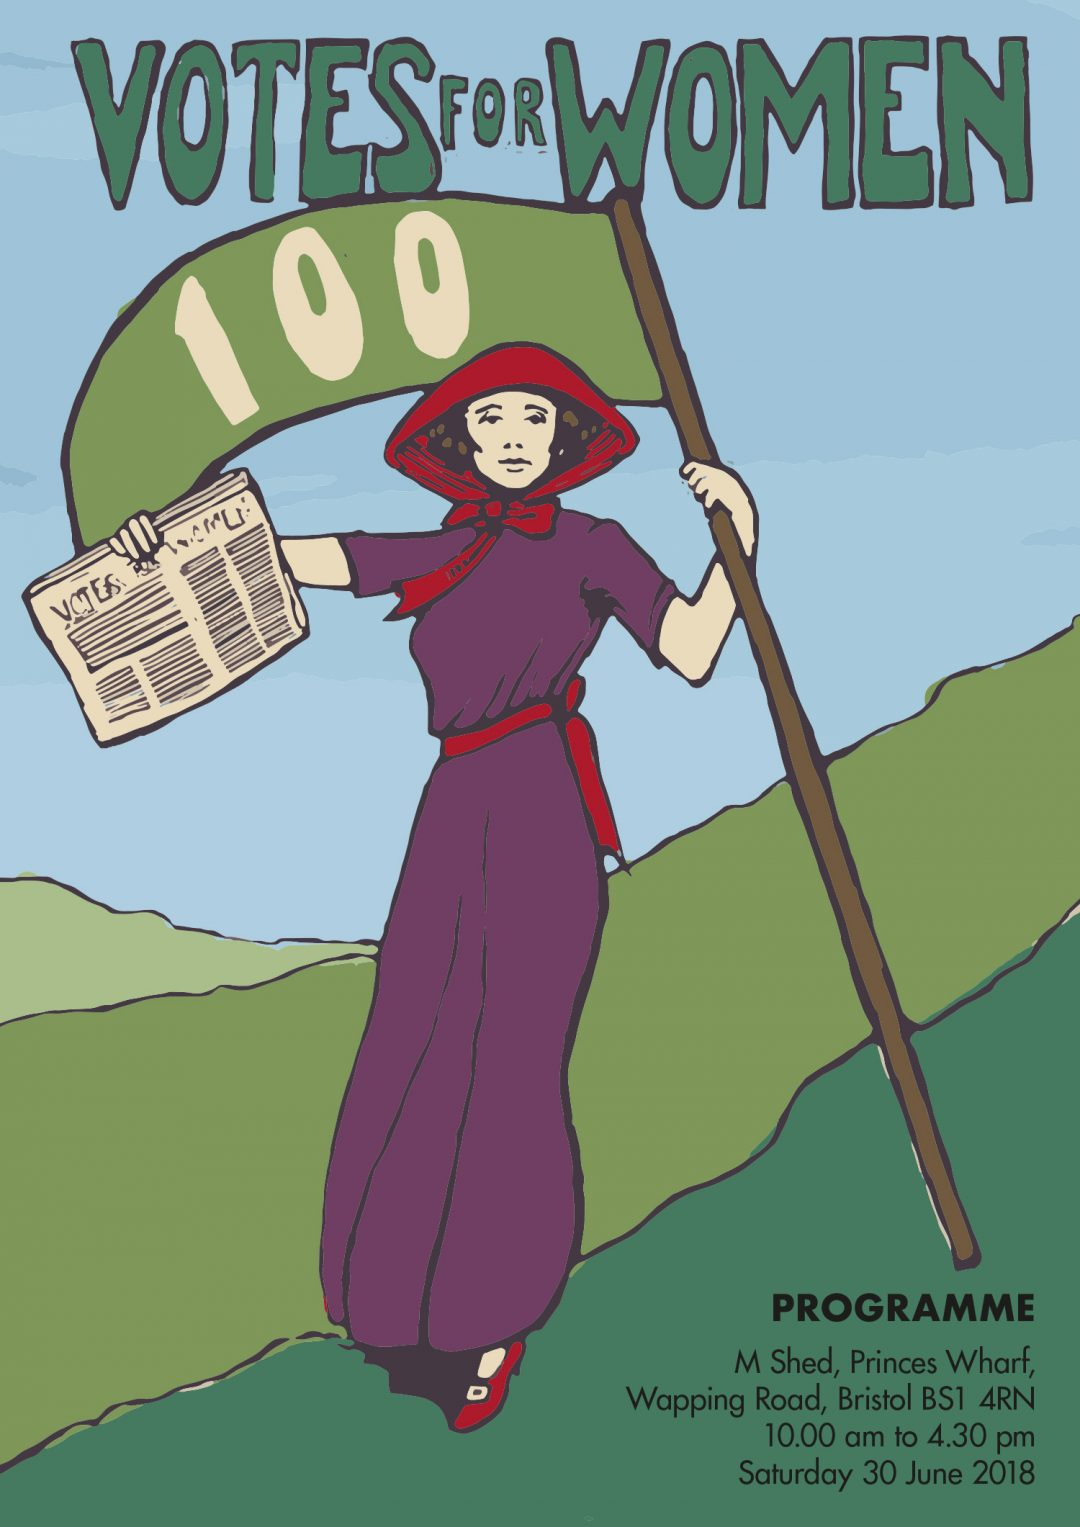 suffragette illustration south wales illustrator Frank Duffy votes for women 100 anniversary